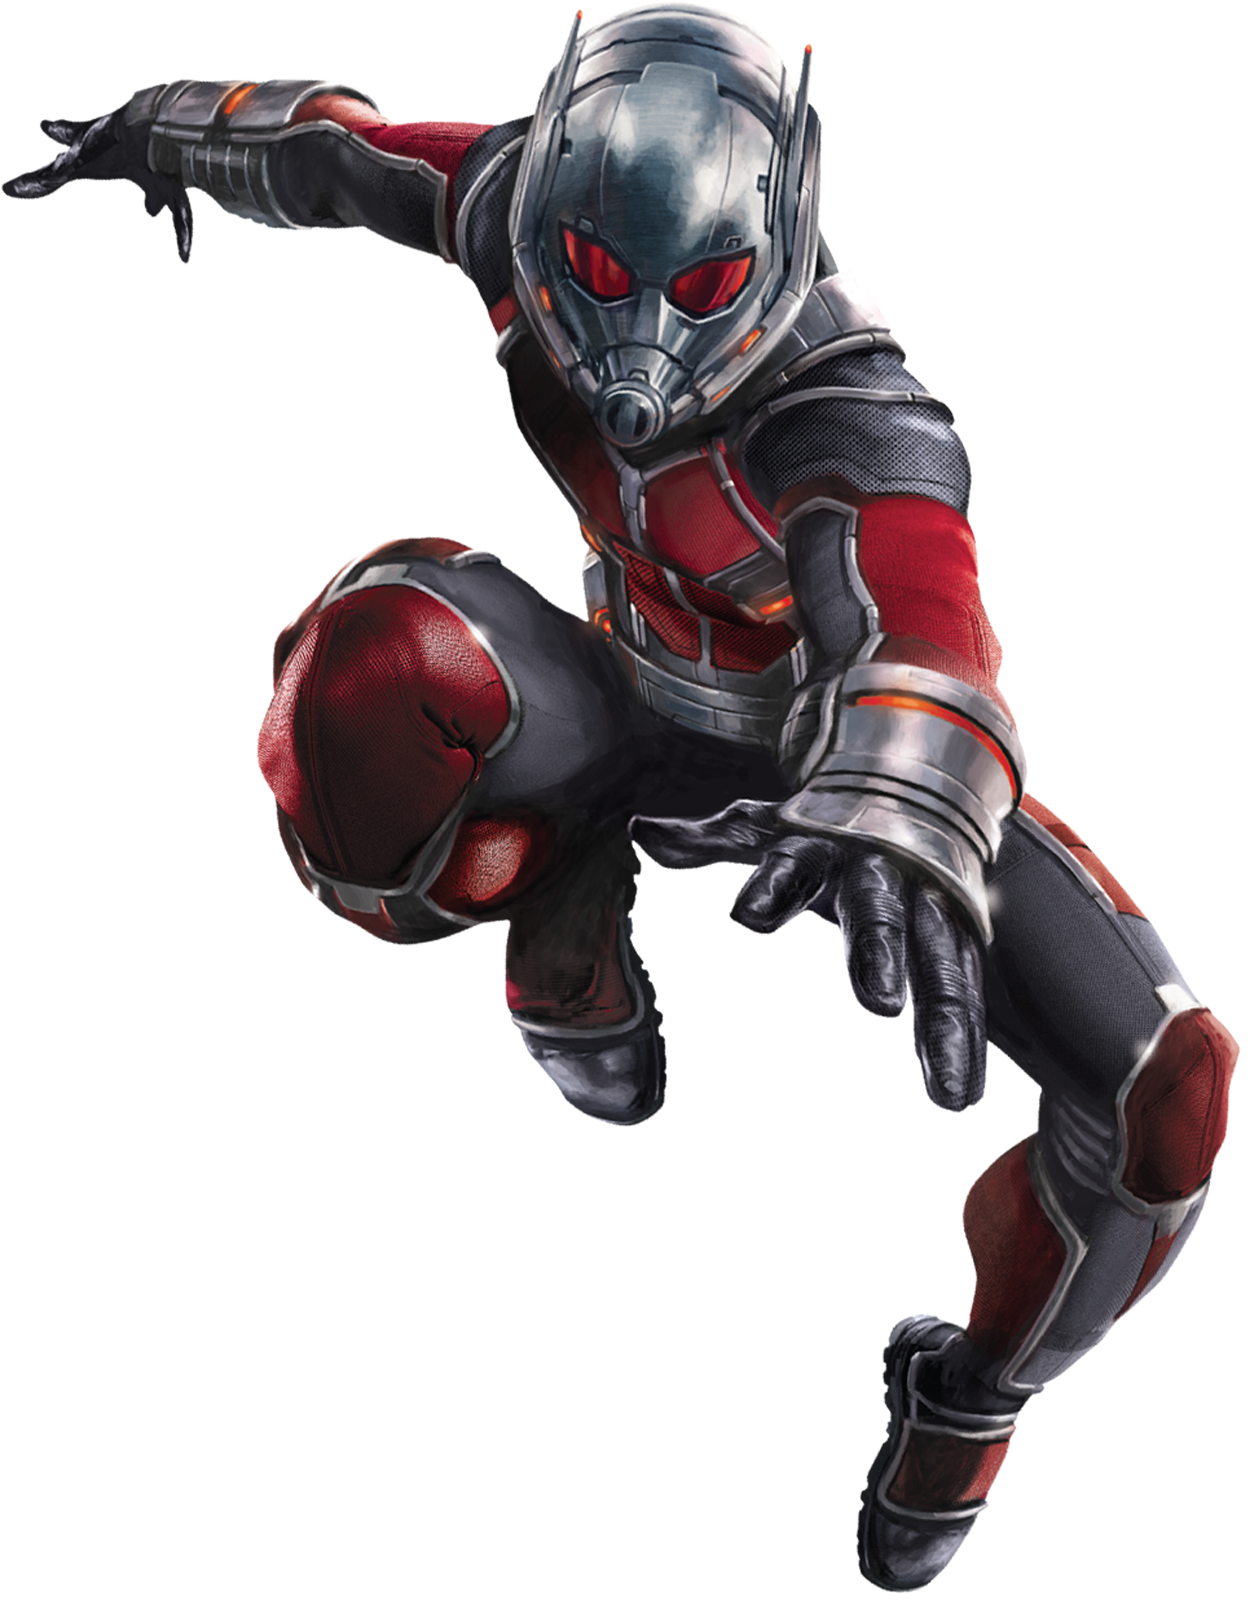 This is a graphic of Dashing Marvel Heroes Ant Man